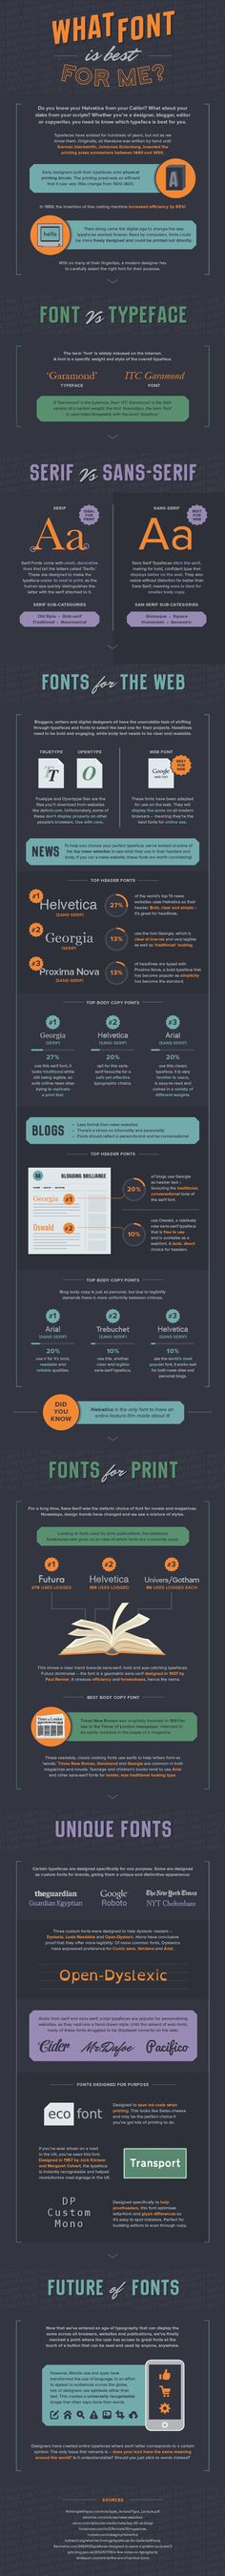 Educational infographic & Data Fonts Matter: Which Fonts Look Best On Web, On Print And For Dyslexic Readers. Image Description Fonts Matter: Which Web Design, Graphic Design Tips, Type Design, Blog Design, Design Elements, Typographie Fonts, Illustrator, Information Graphics, Photoshop